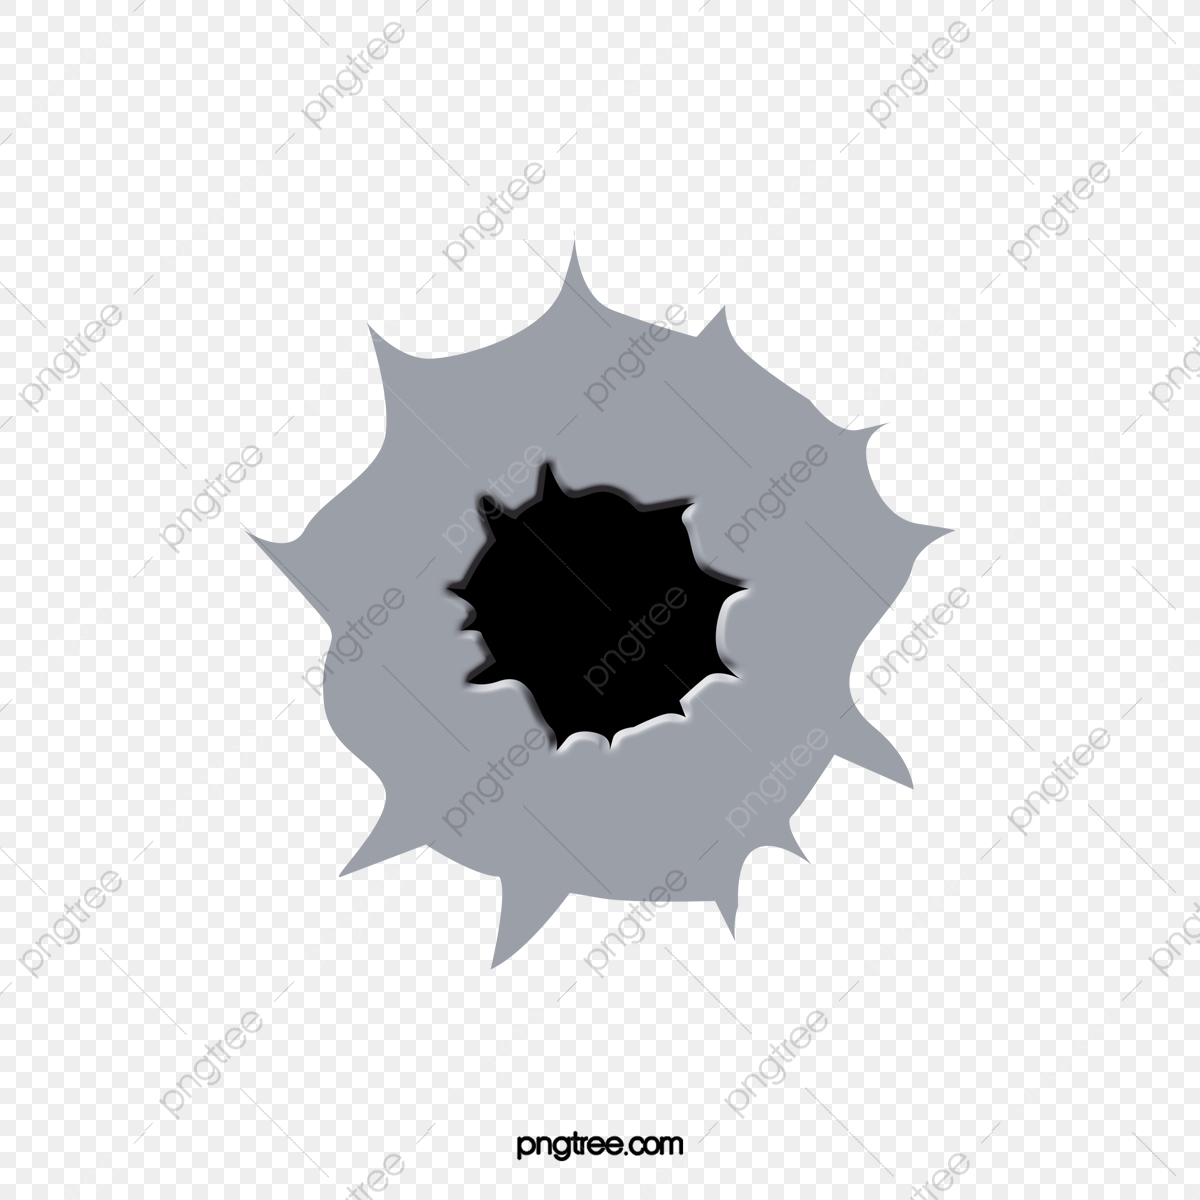 Bullet Holes Bullet Hole With Bullets Png Transparent Clipart Image And Psd File For Free Download Cropped transparent bullet hole fit. https pngtree com freepng bullet holes 108345 html